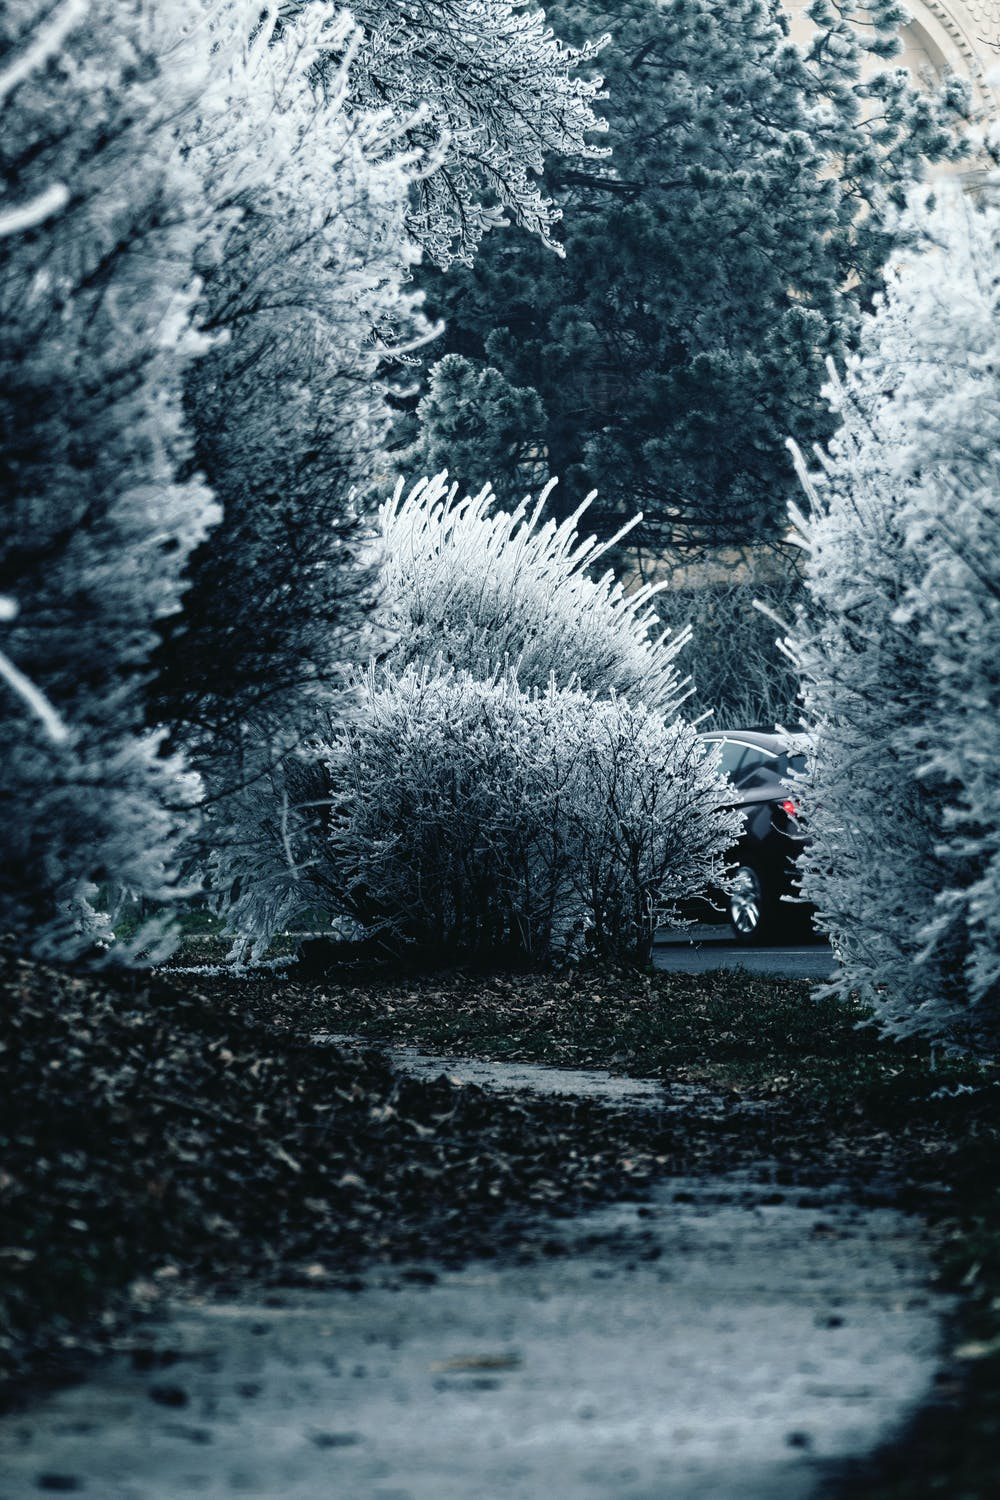 Winter wallpaper with trees